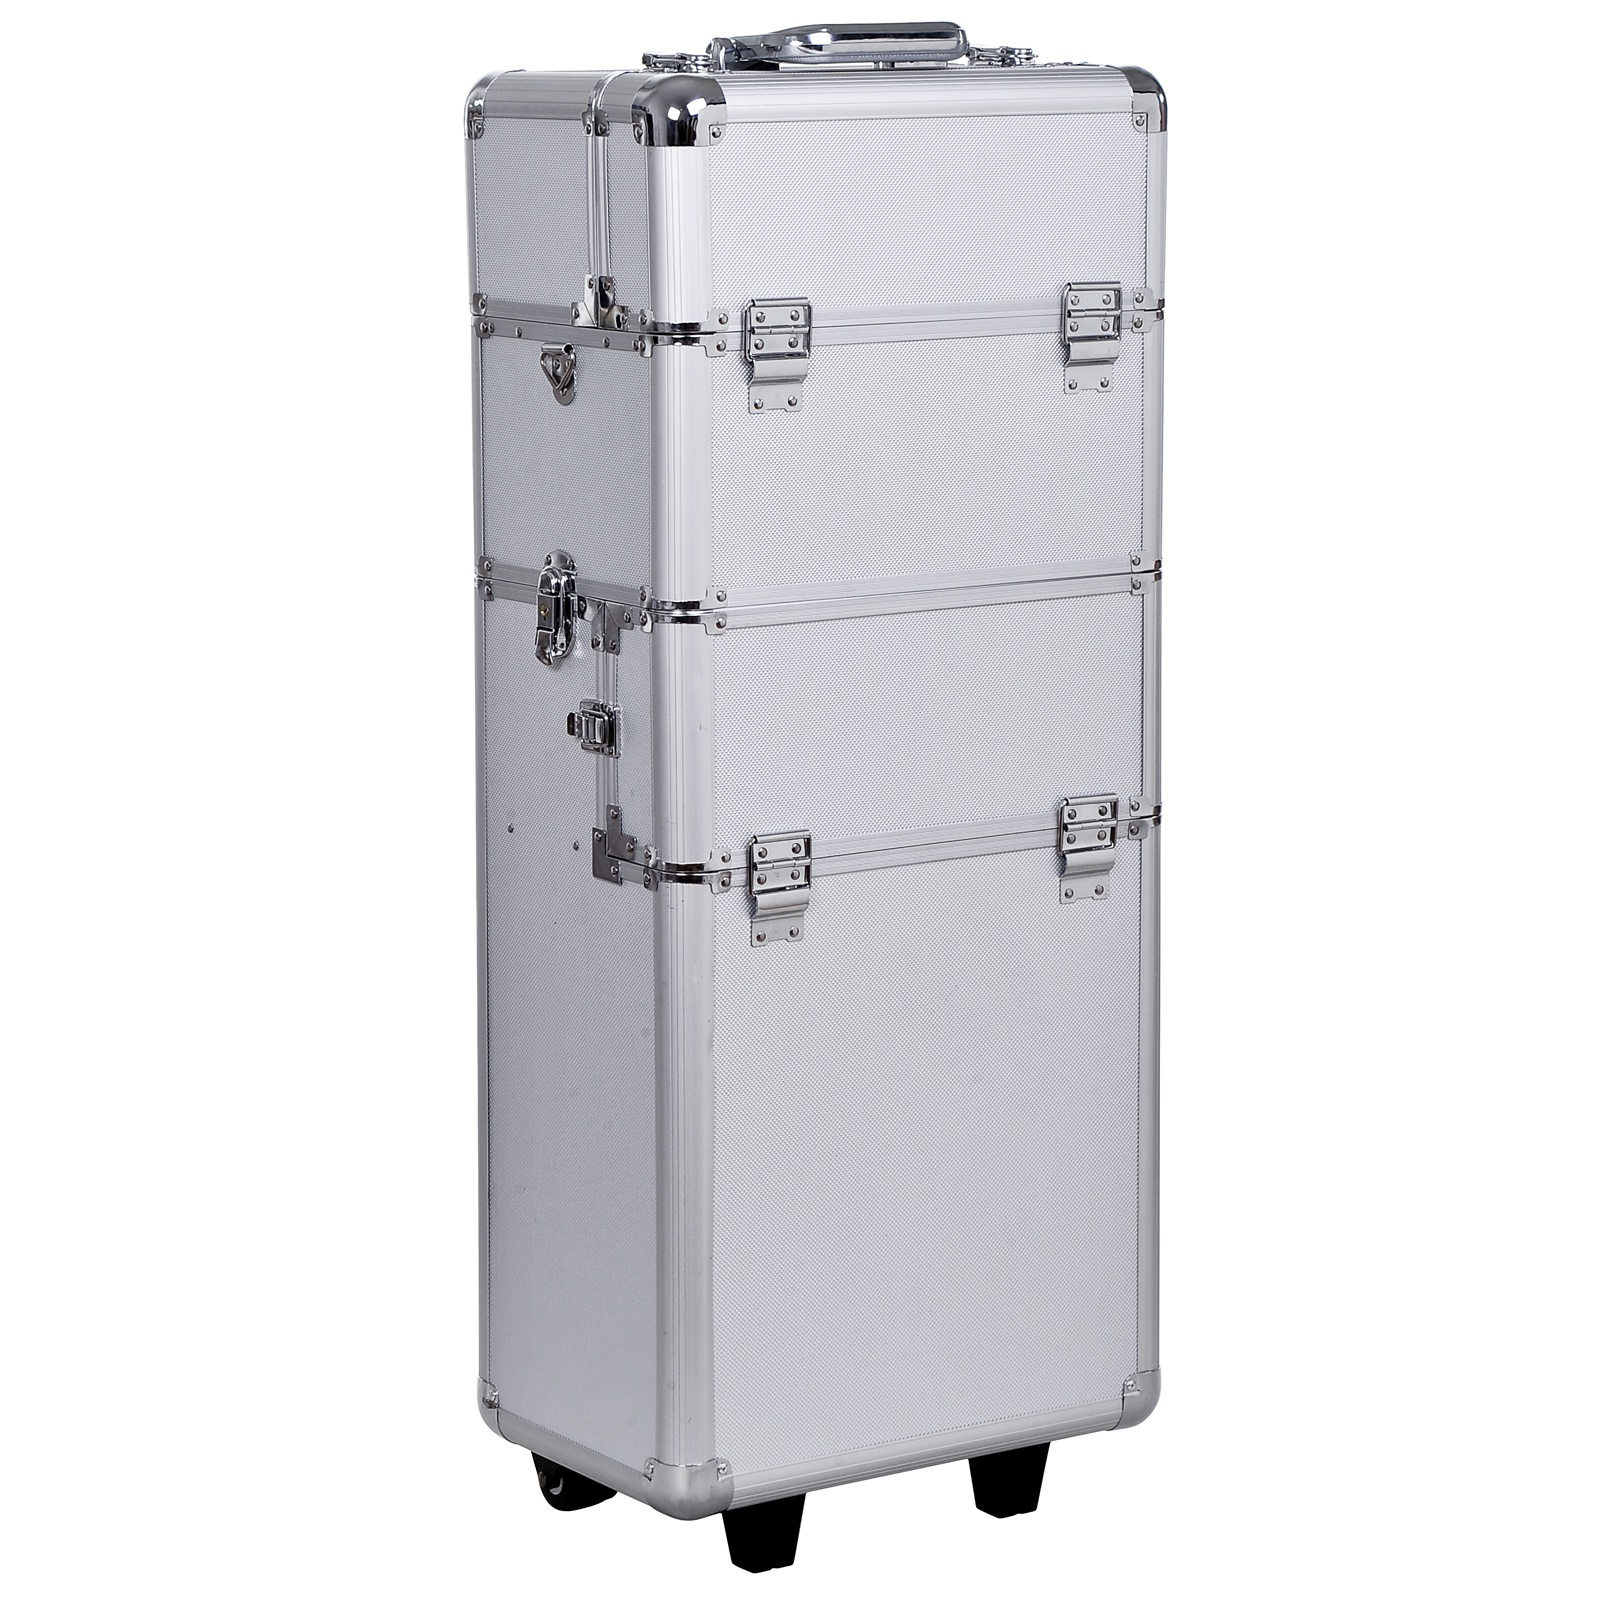 HomCom Trolley Make up Artist profesional Beauty Case Machiaj din Aluminiu imagine aosom.ro